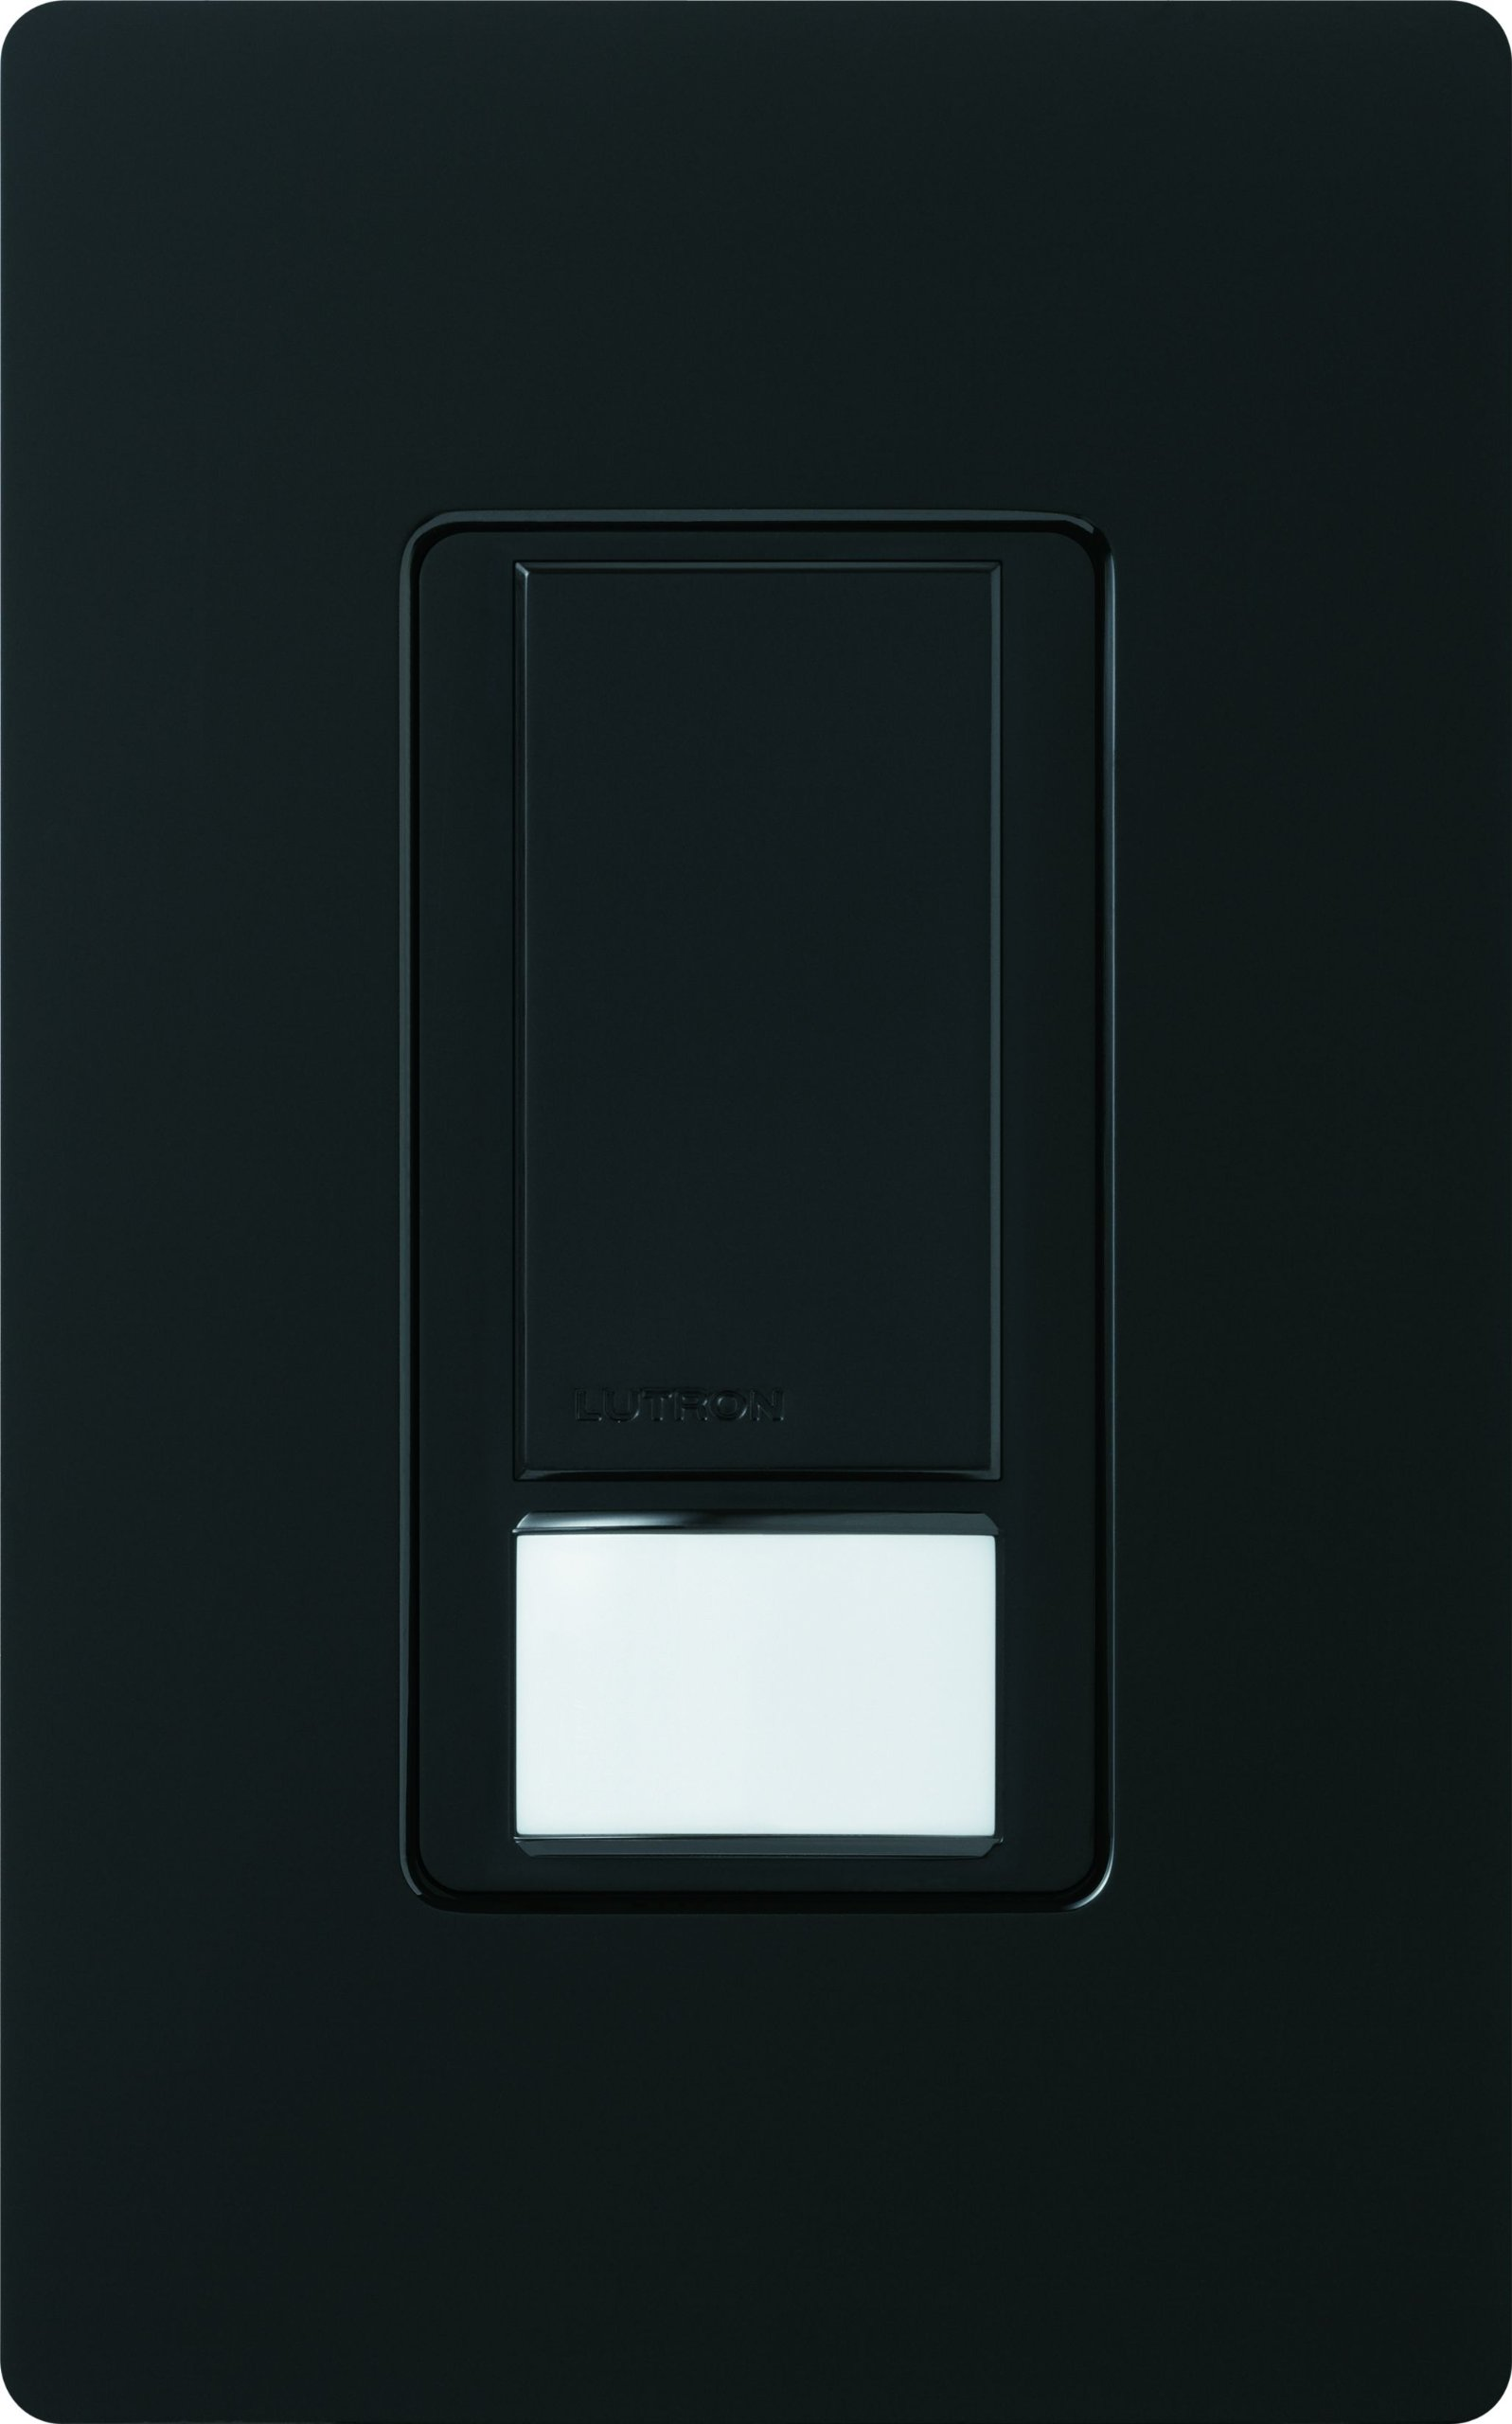 Lutron Maestro Sensor switch, 2A, No Neutral Required, Single-Pole, MS-OPS2-BL, Black by Lutron (Image #2)